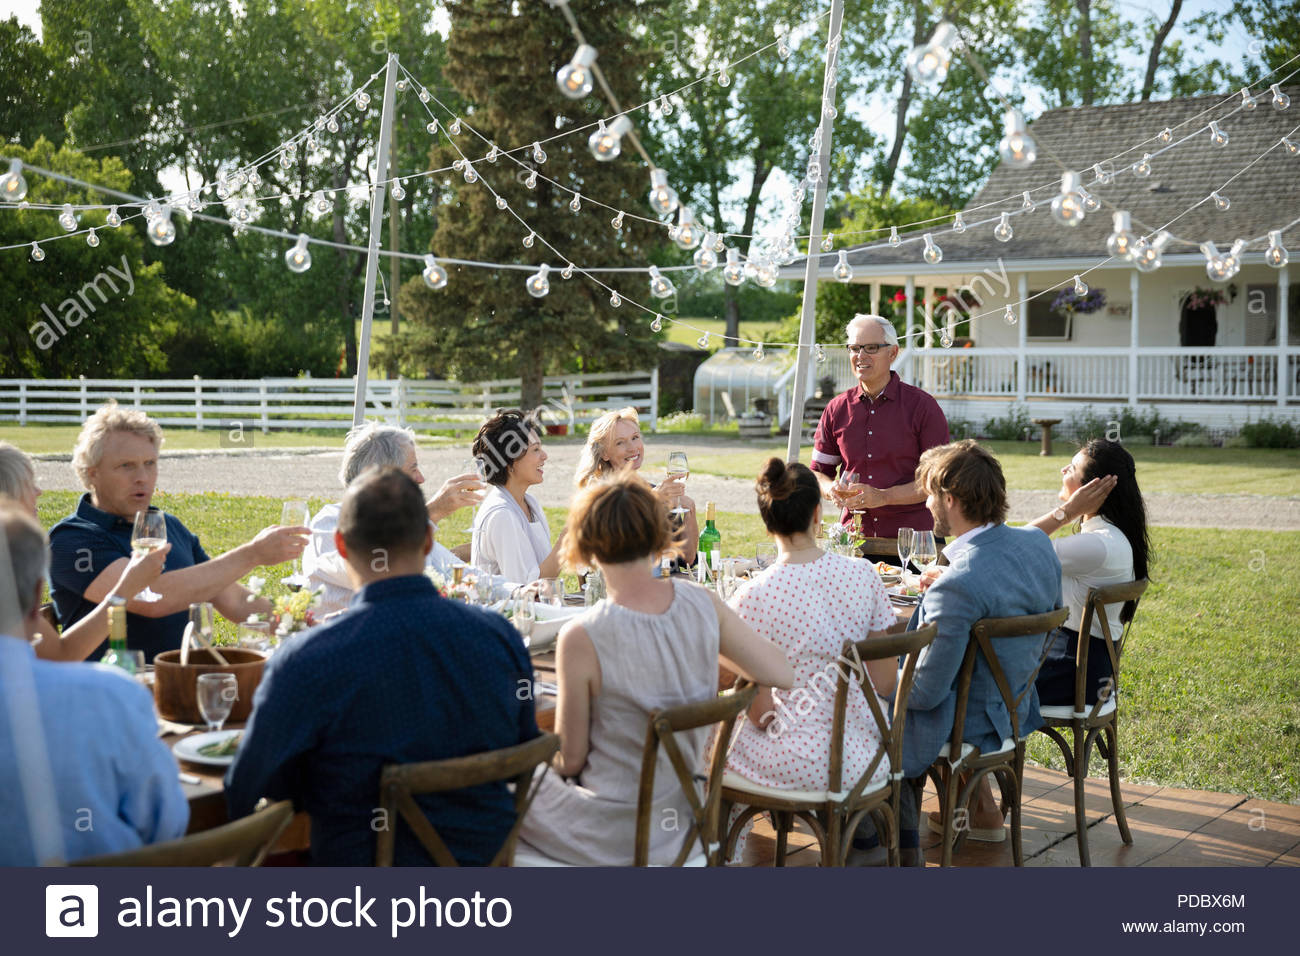 Senior man giving celebratory toast at garden party table - Stock Image